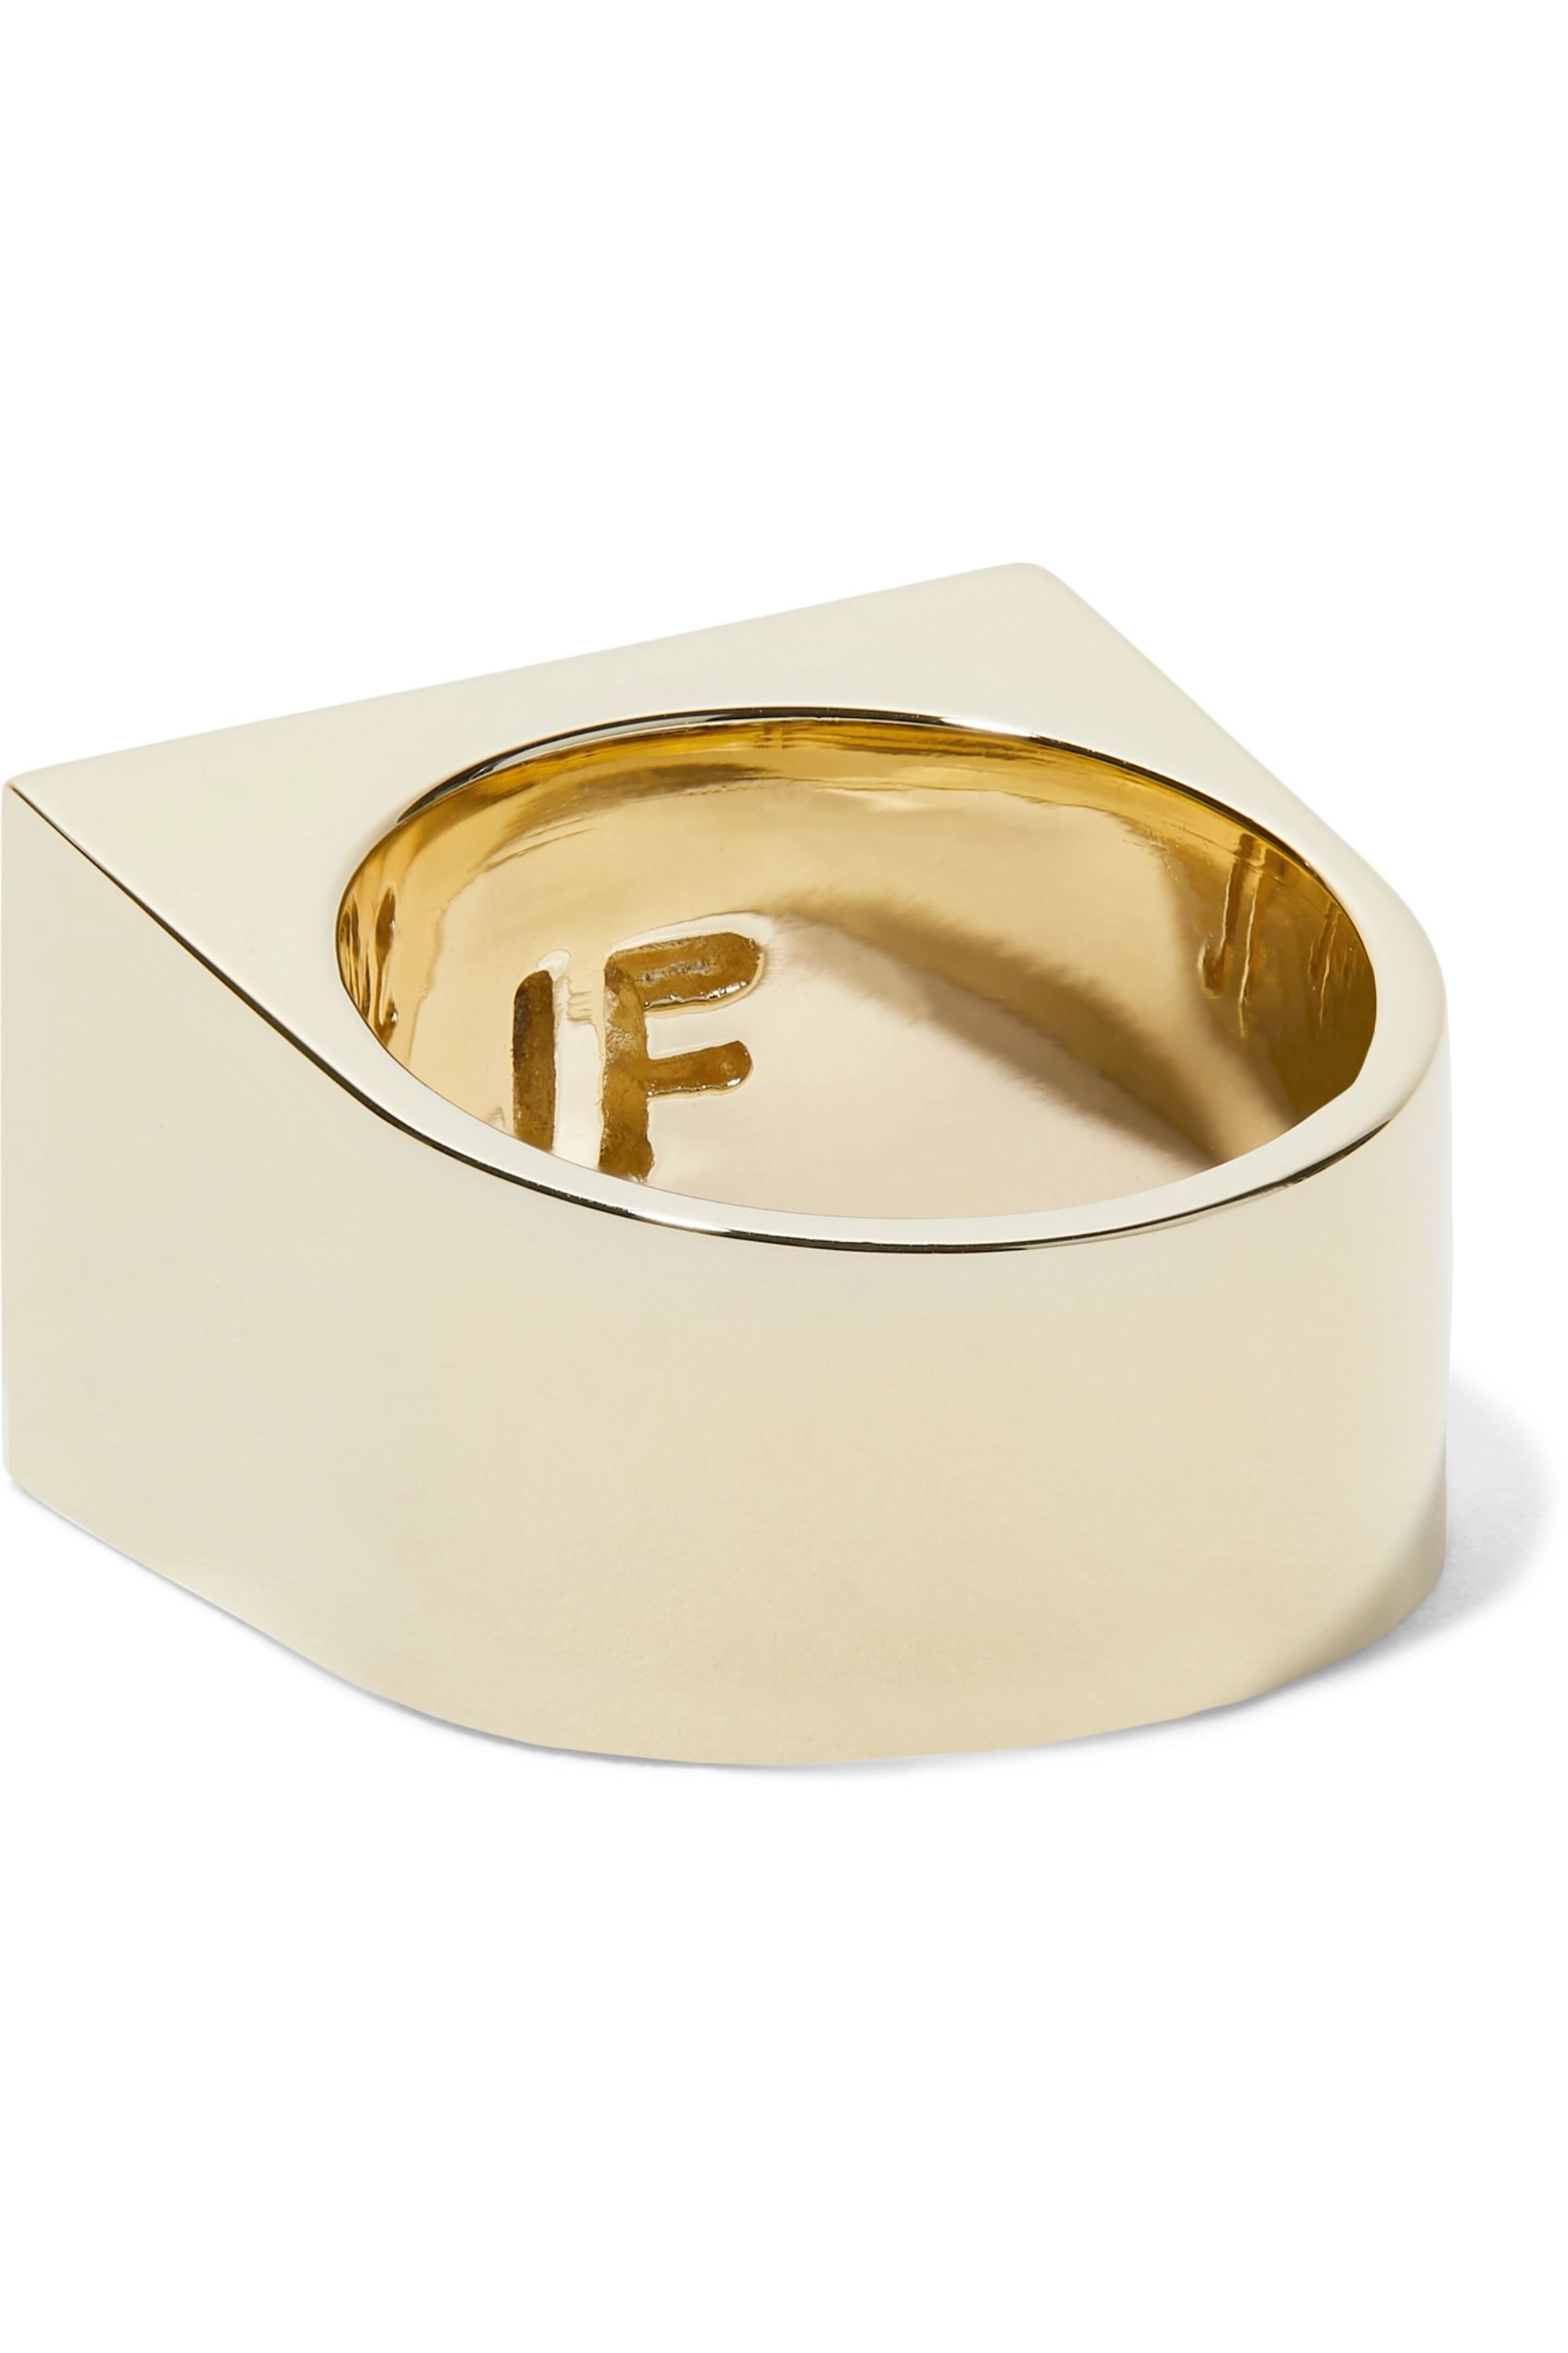 Jennifer Fisher Stripe Signet gold-plated pinky ring